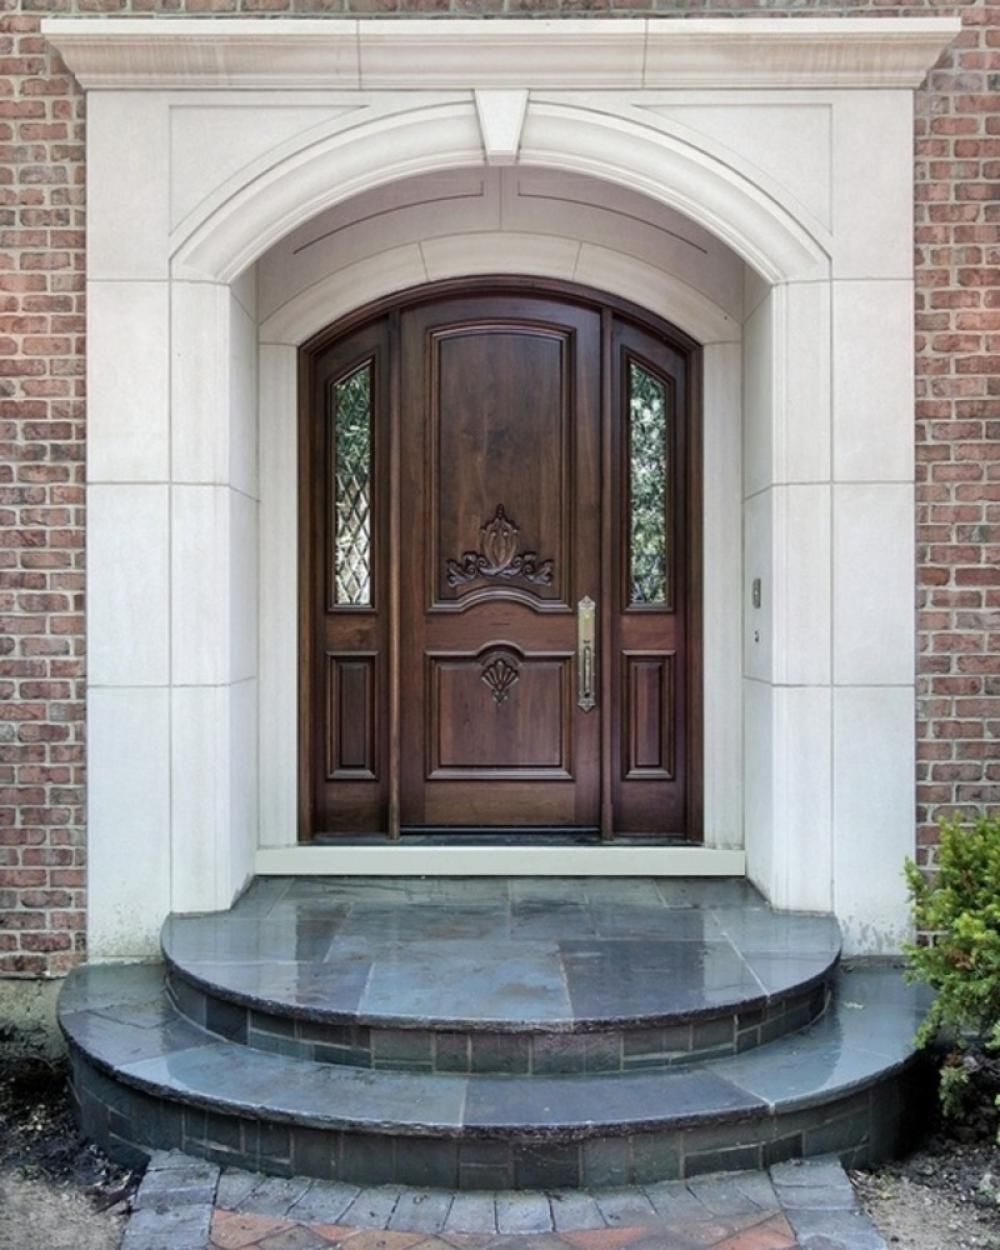 House design entrance - Furniture Luxurious Wooden Front Door With Big Wall Around Amazing Front Doors Design Ideas For Your Elegant House Entrance Doors